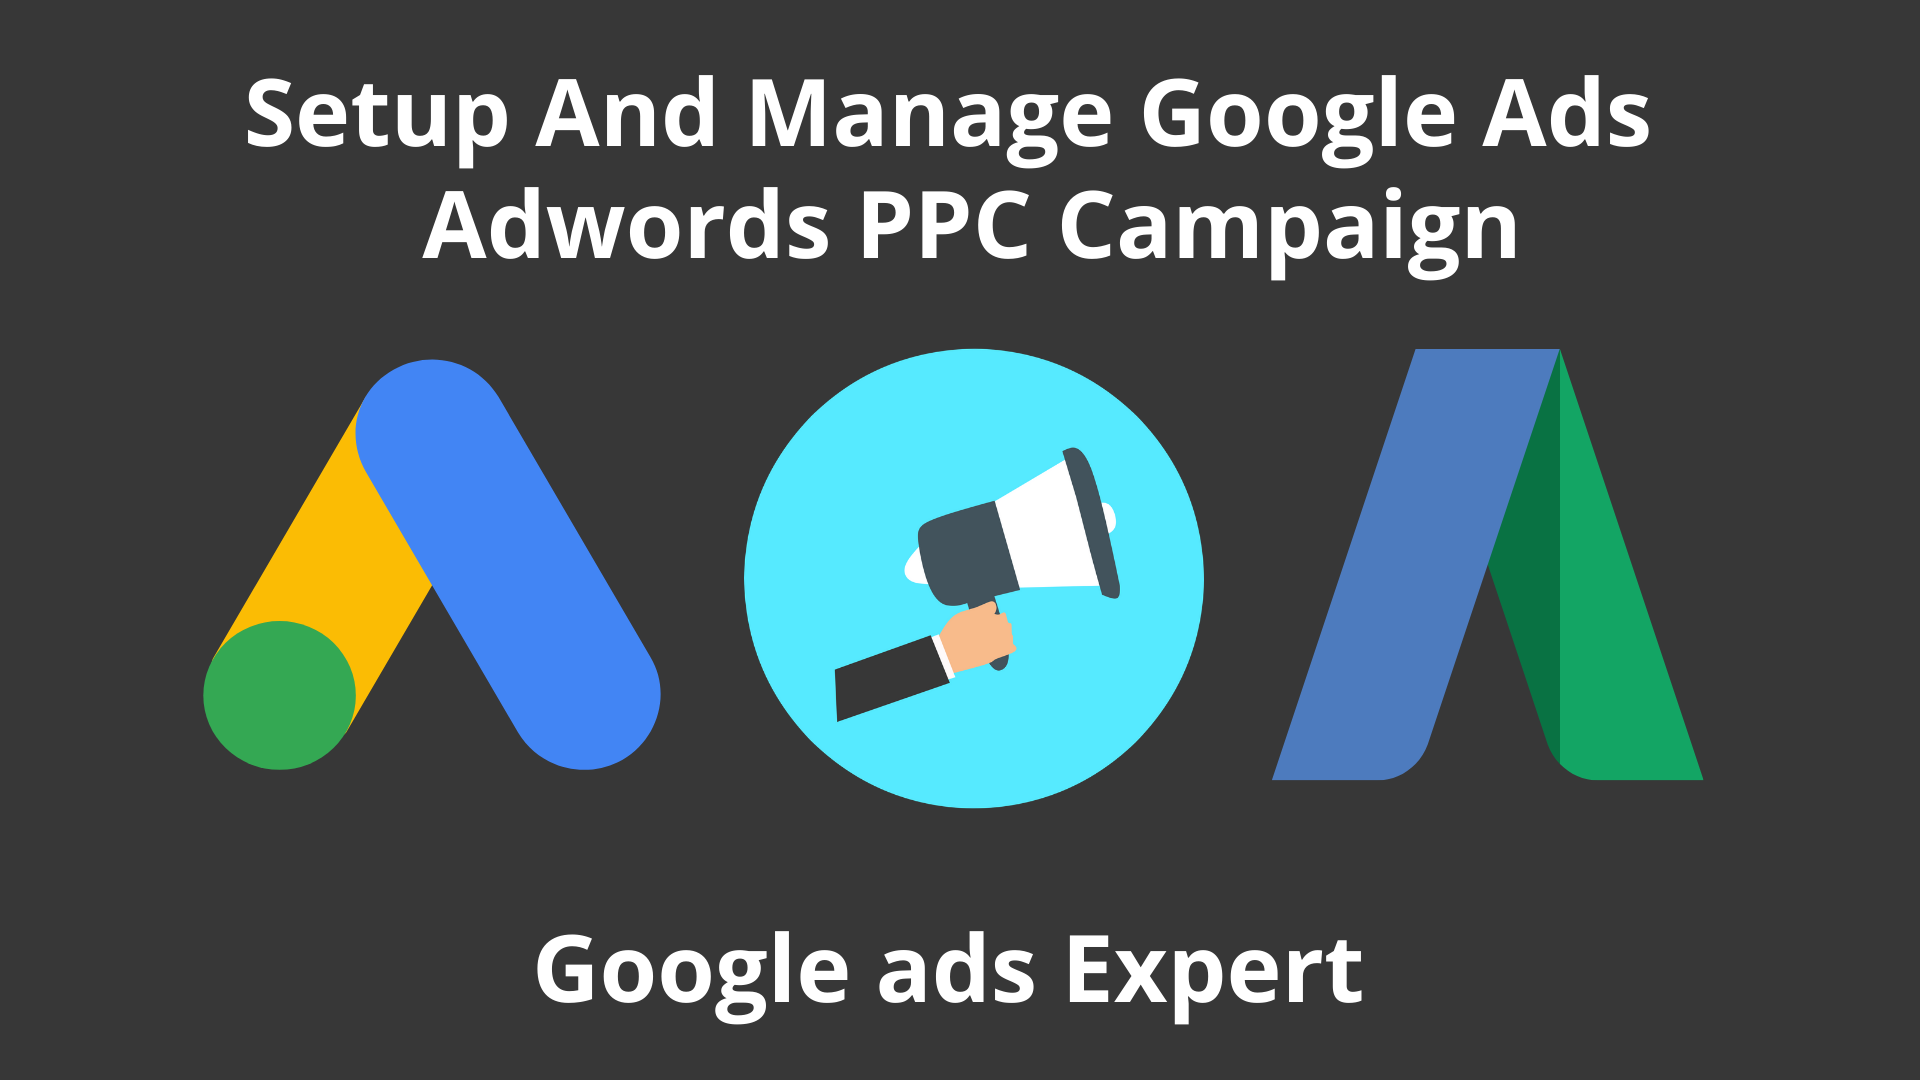 I will setup and manage google ads campaign adwords ppc campaign, FiverrBox